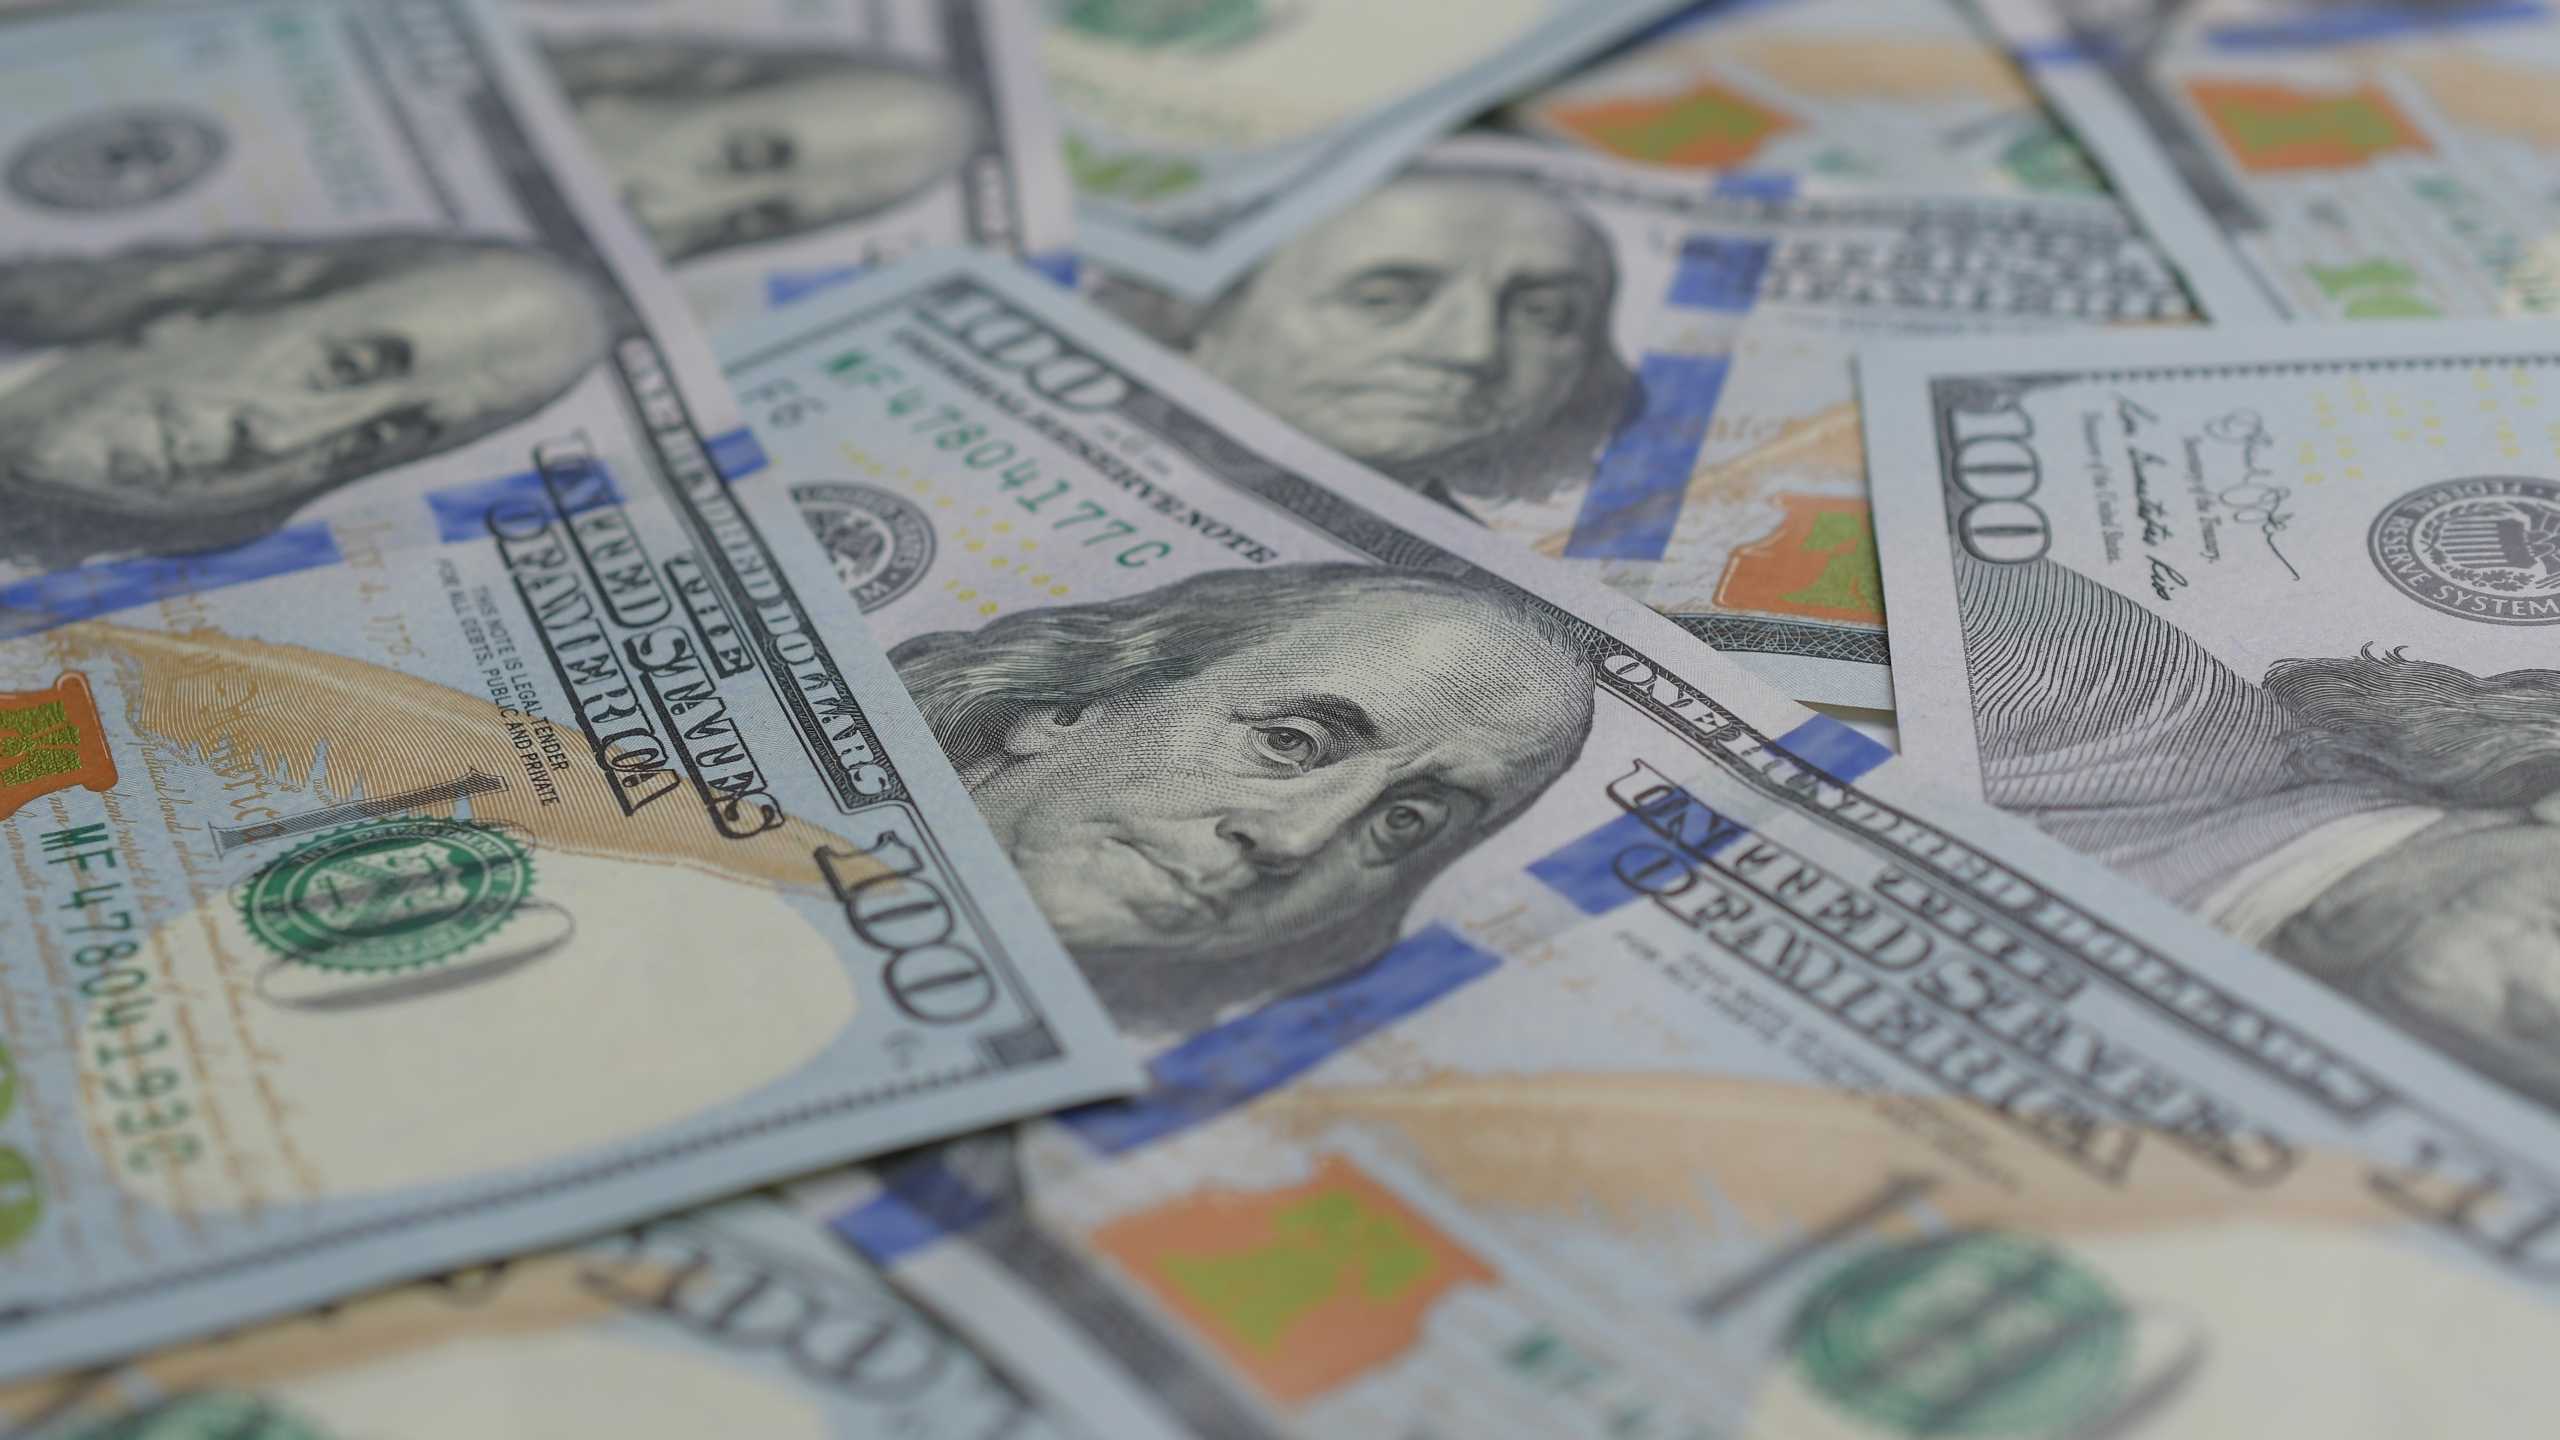 $100 bills are seen in a file photo. (Credit: Getty Images)